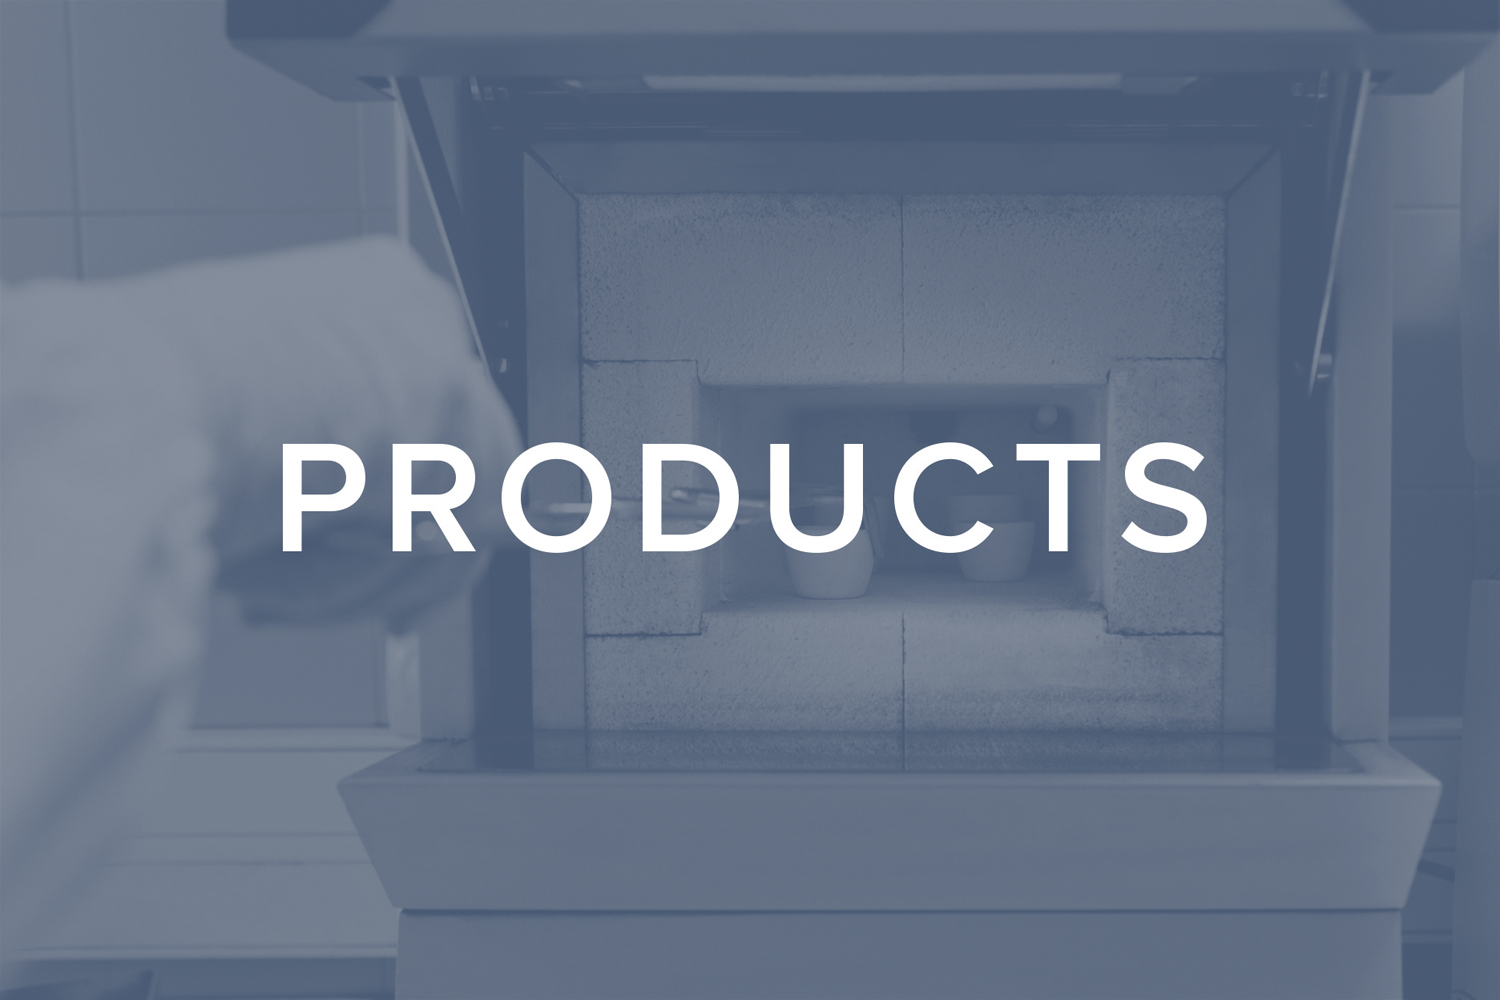 products-06.jpg